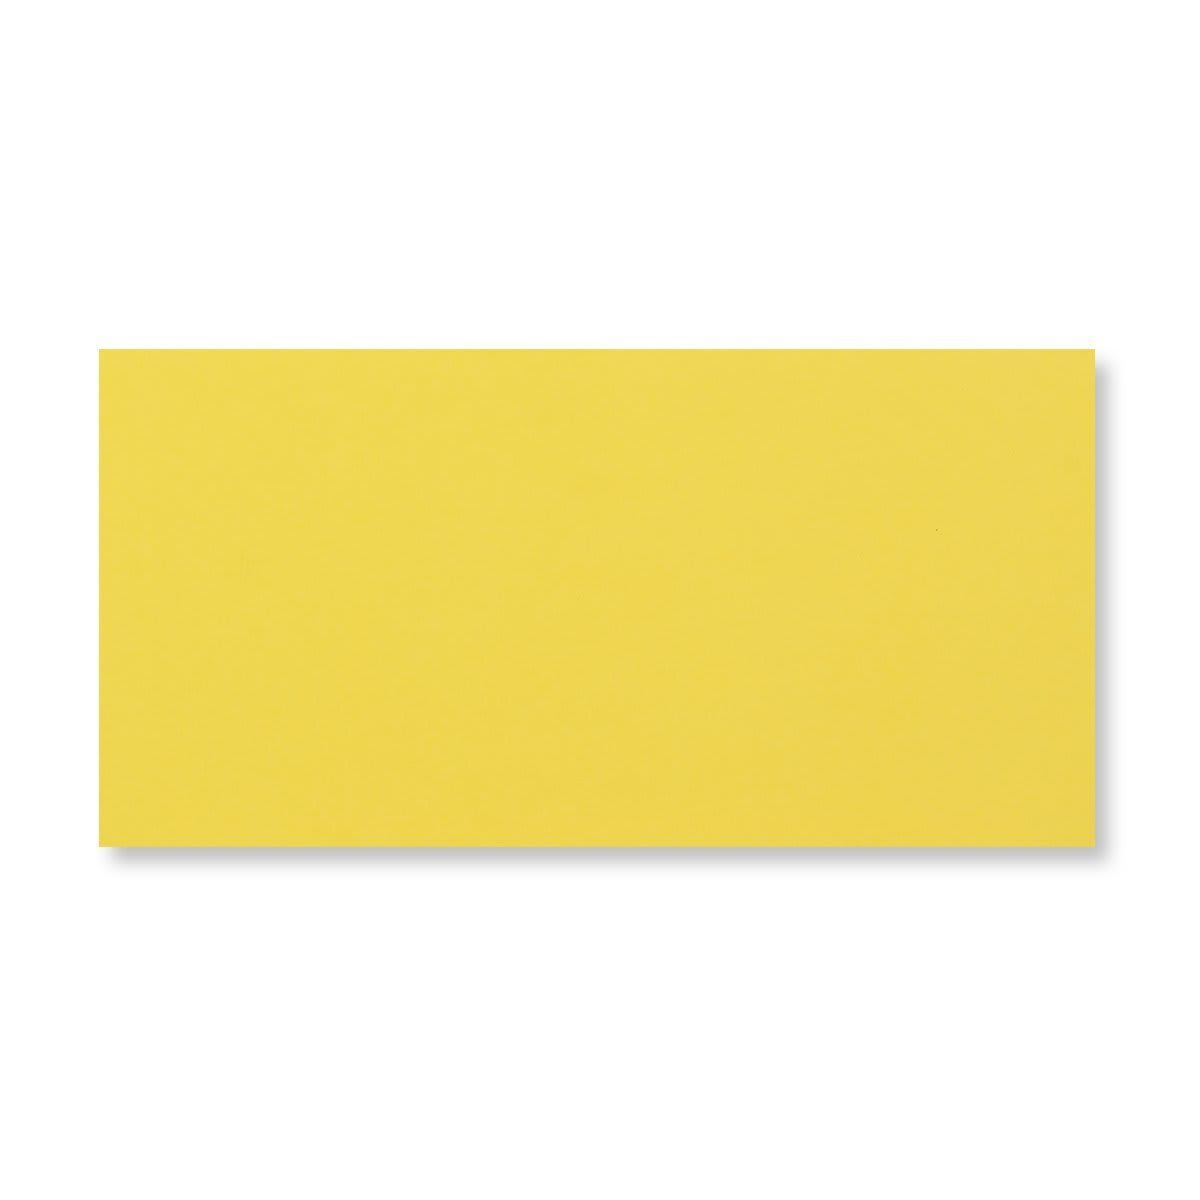 DL MID YELLOW PEEL AND SEAL ENVELOPES